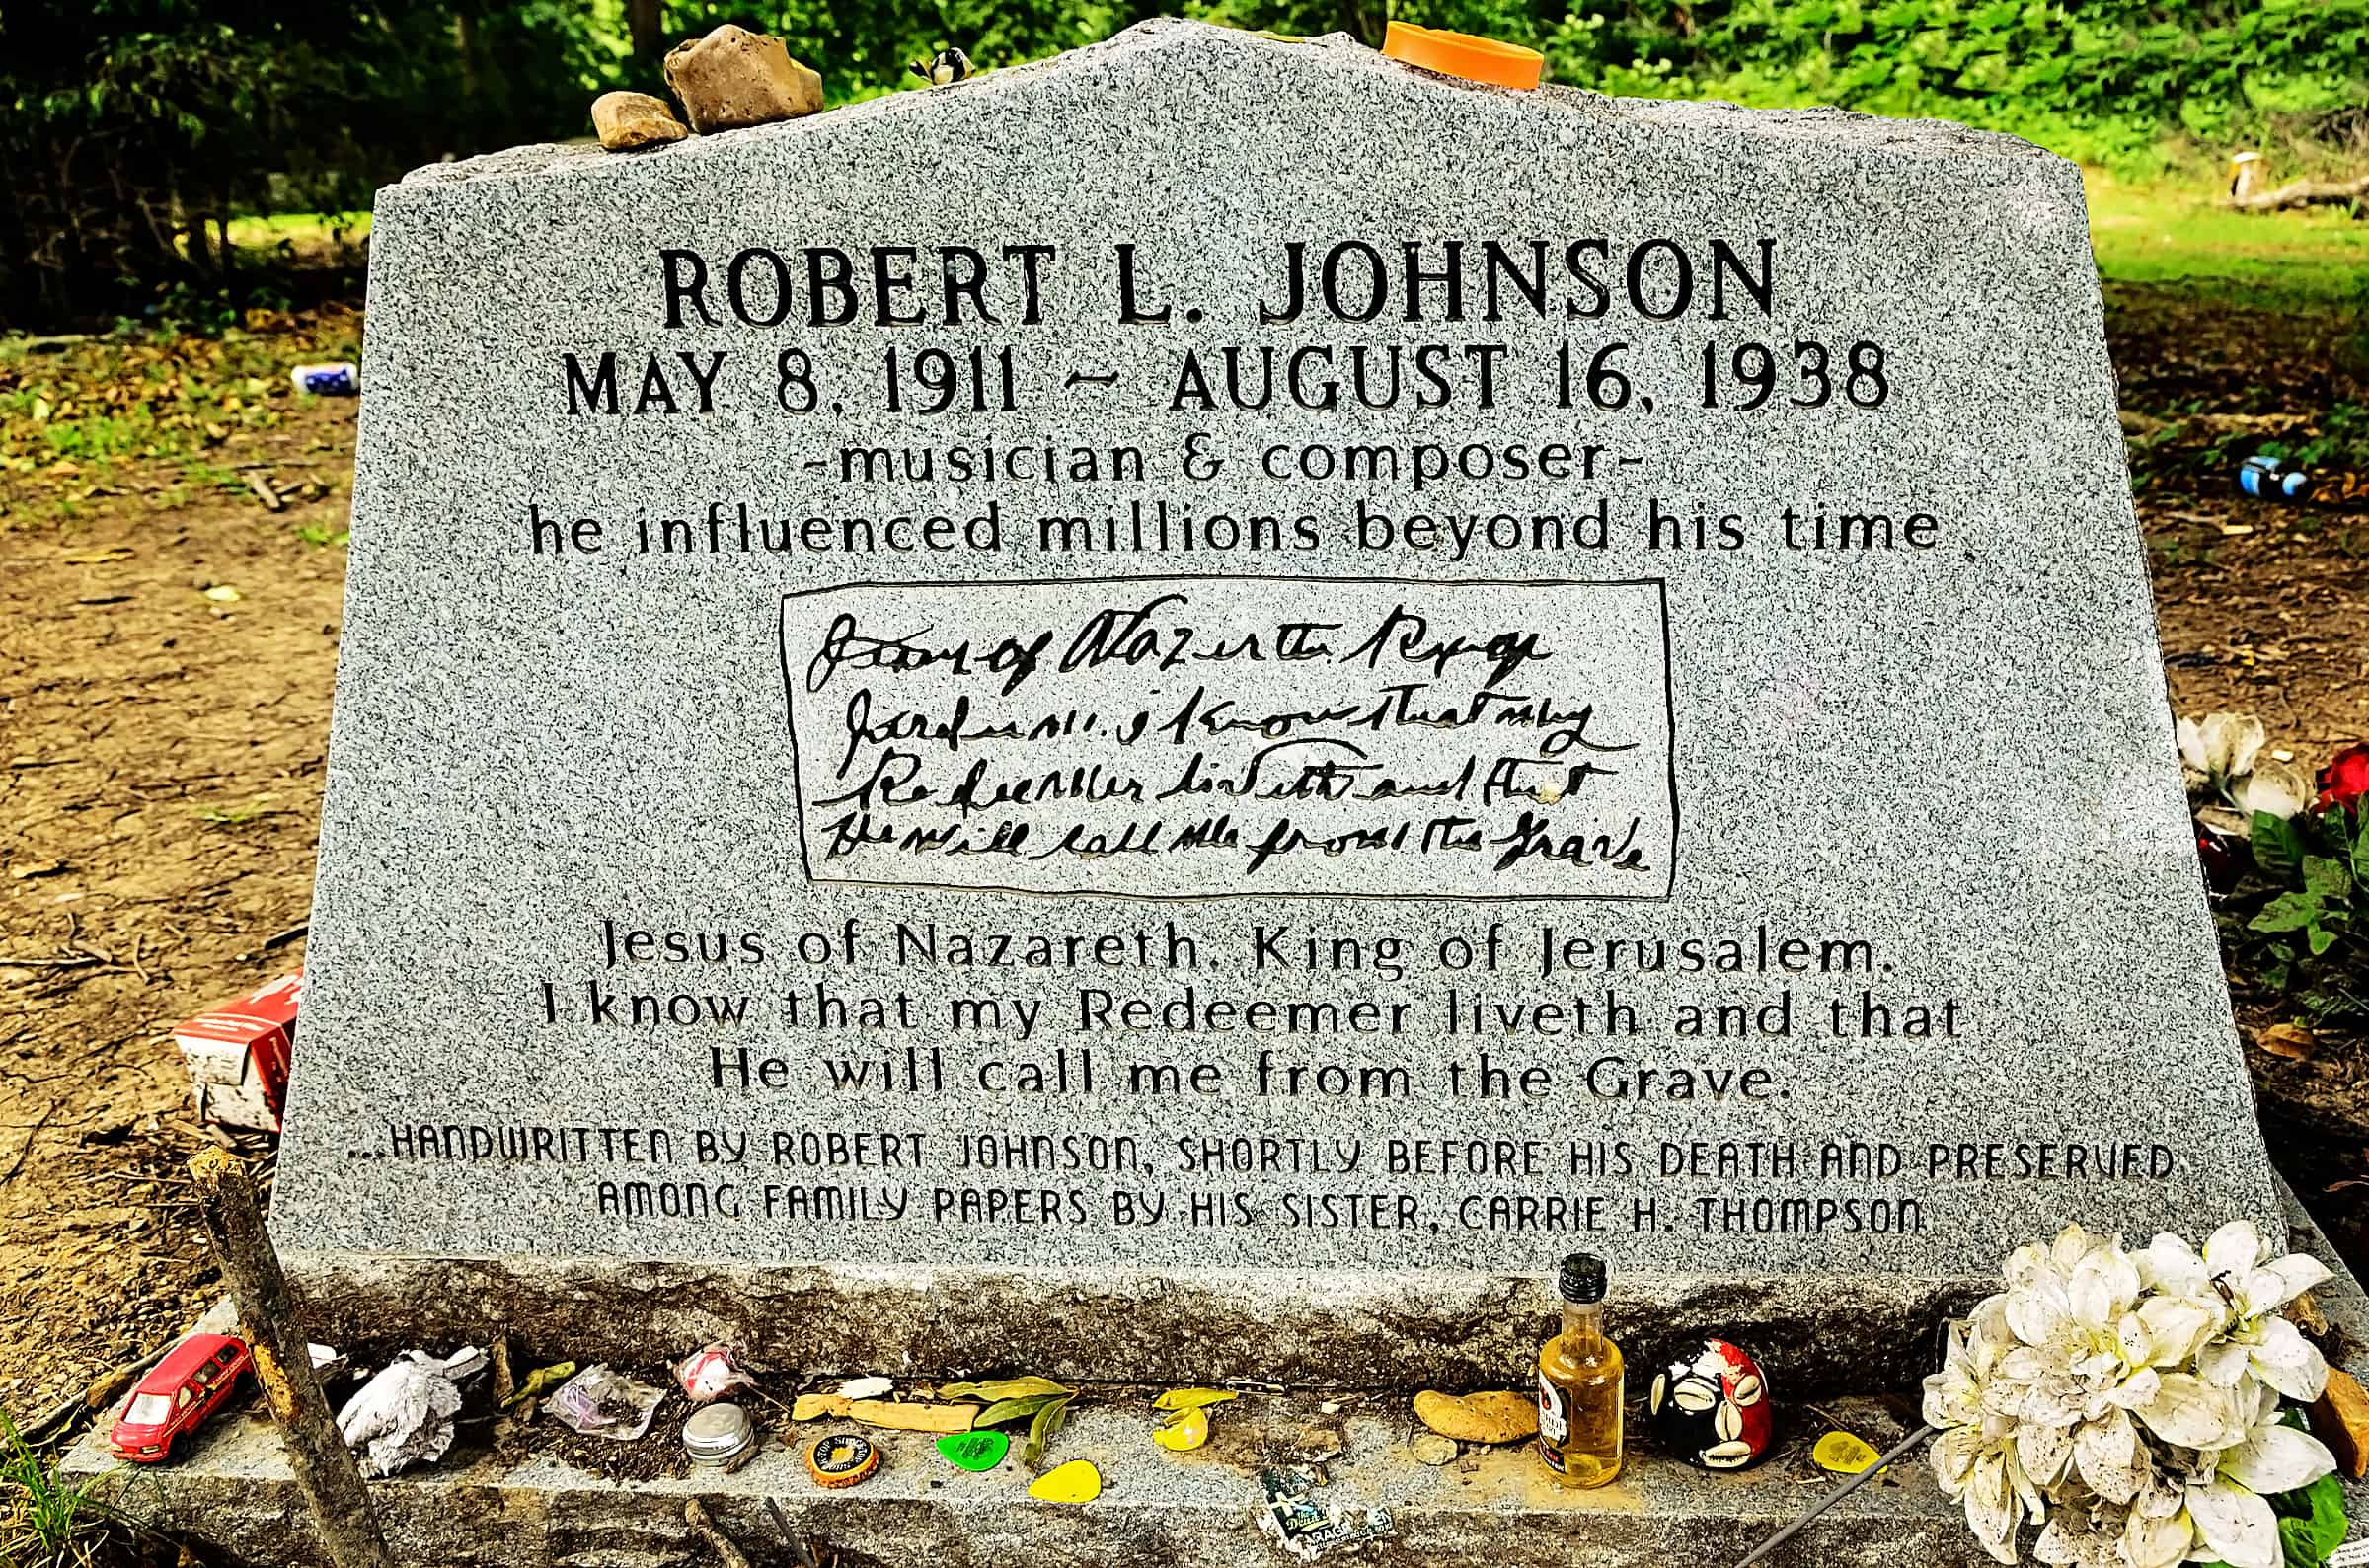 Bluesman Robert Johnson's grave in Greenwood, Mississippi